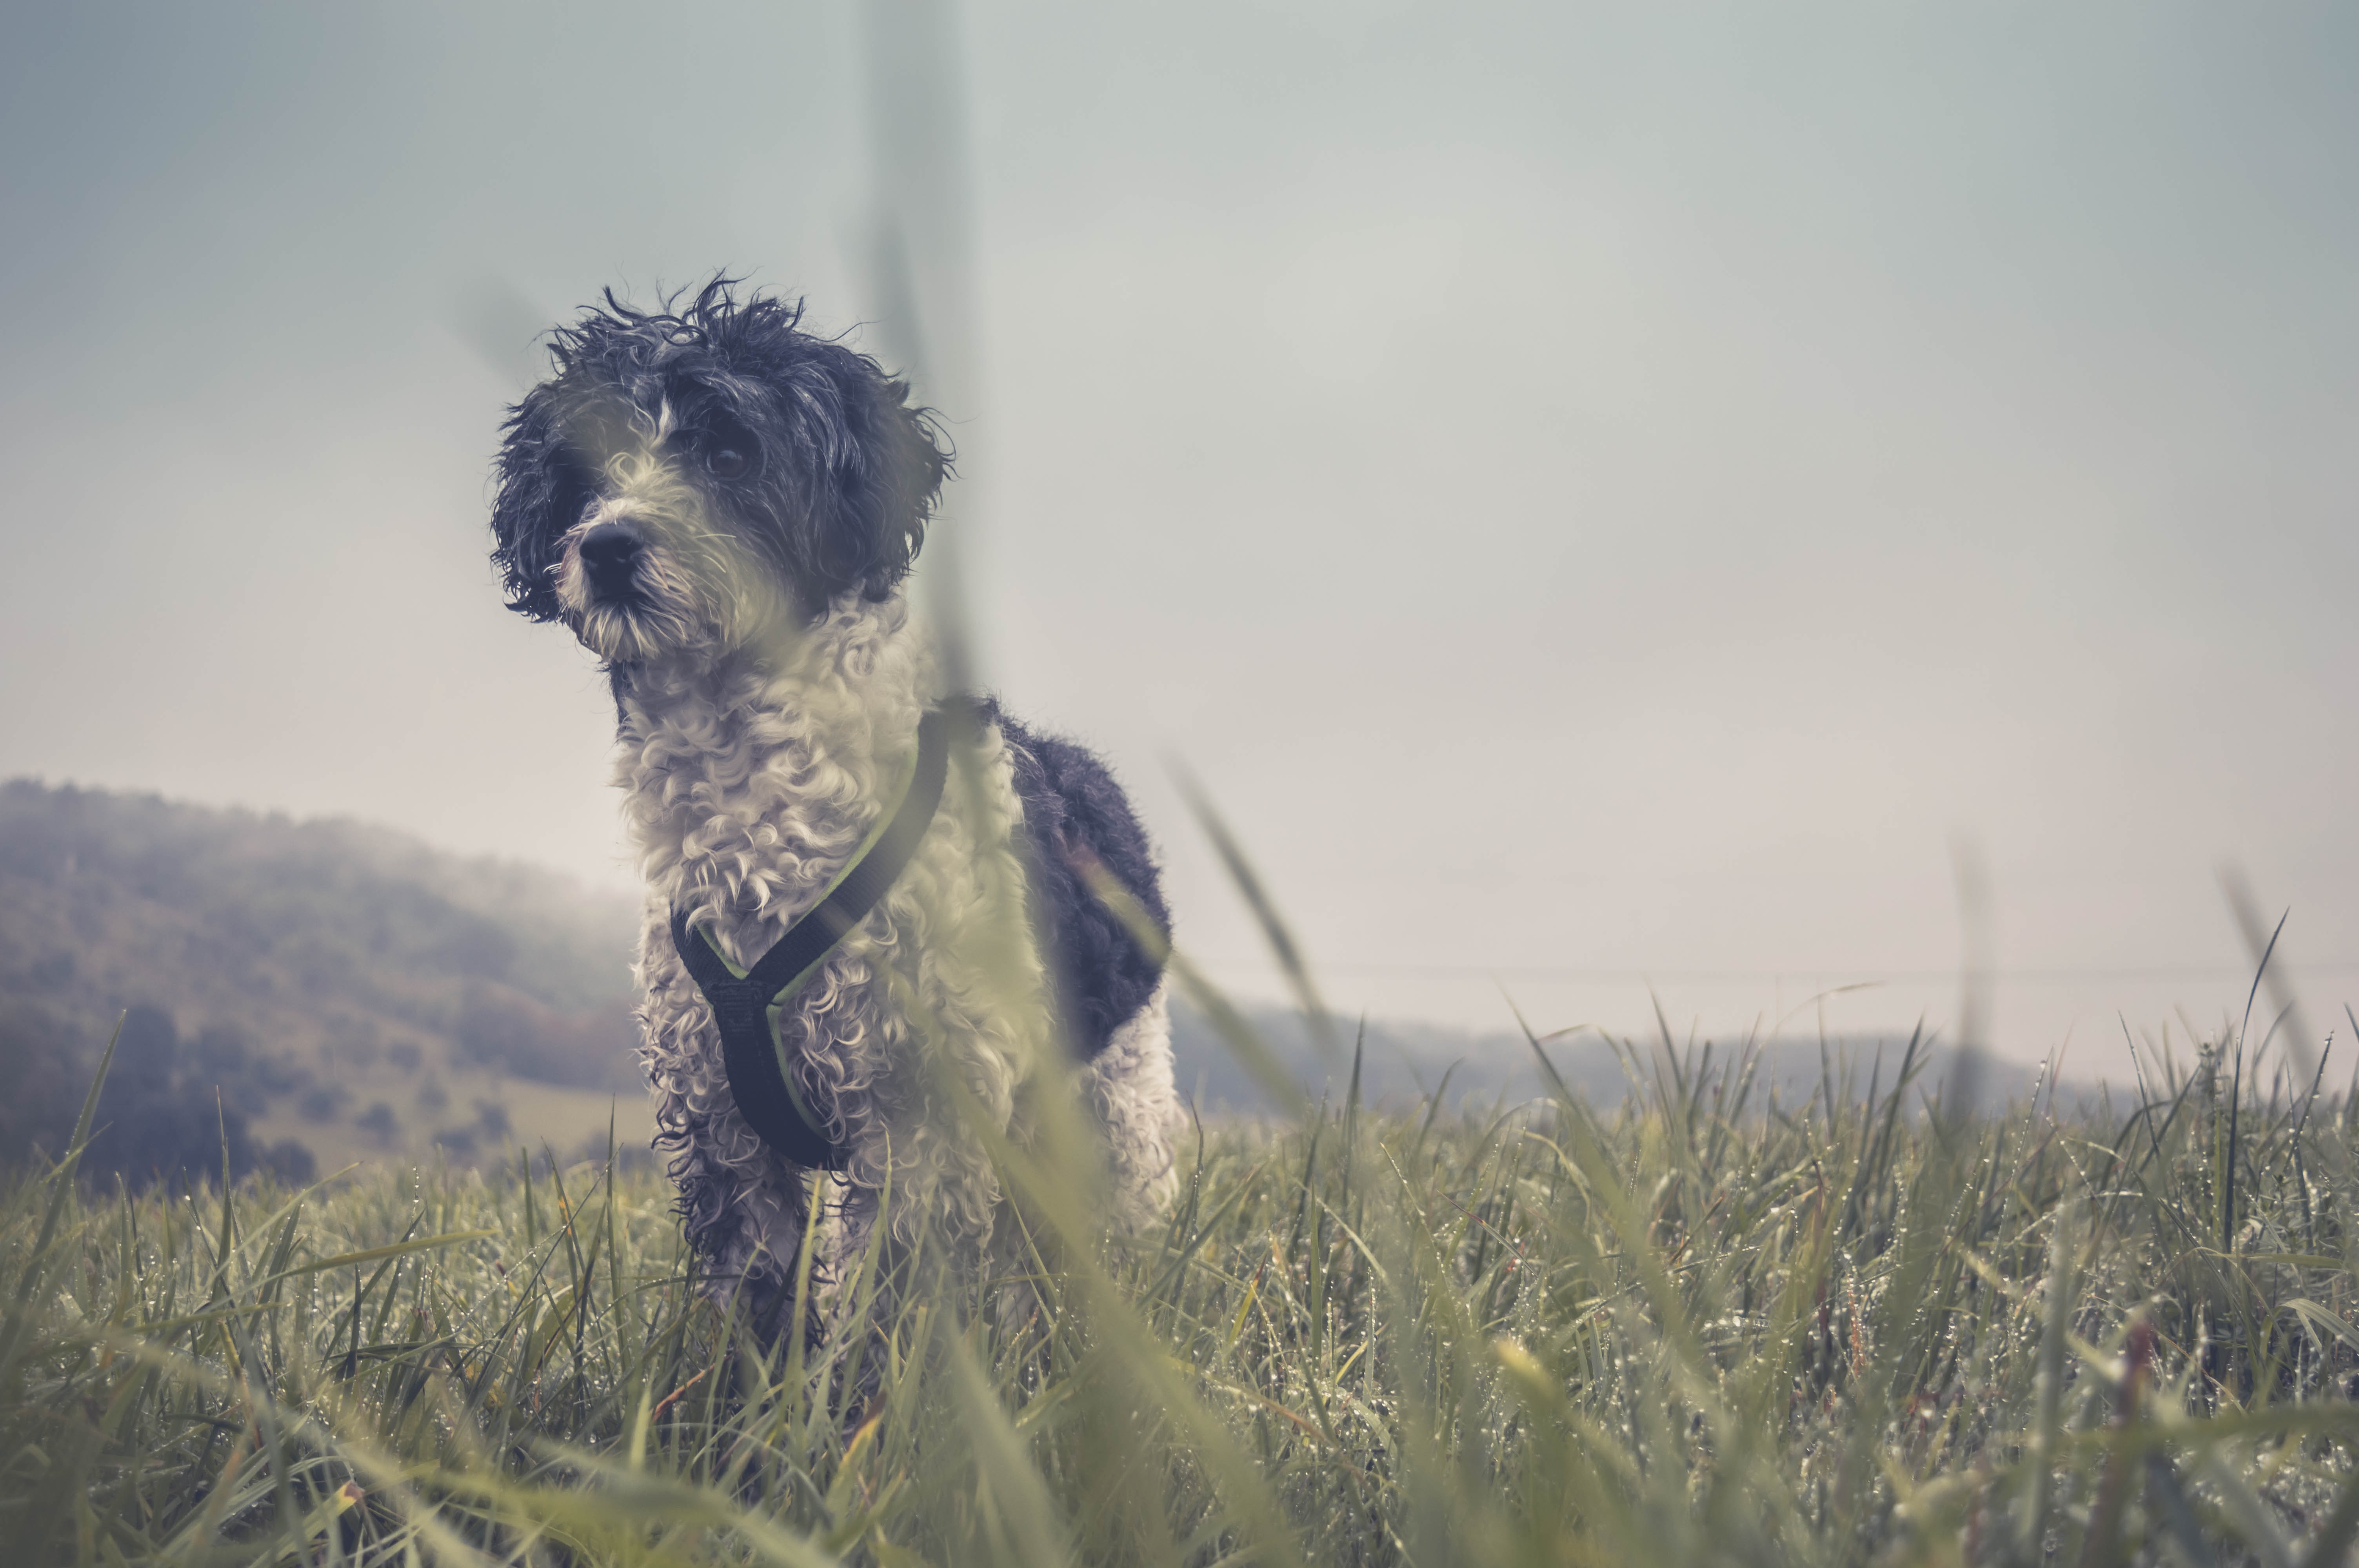 adult long-coated white and black terrier on grass field